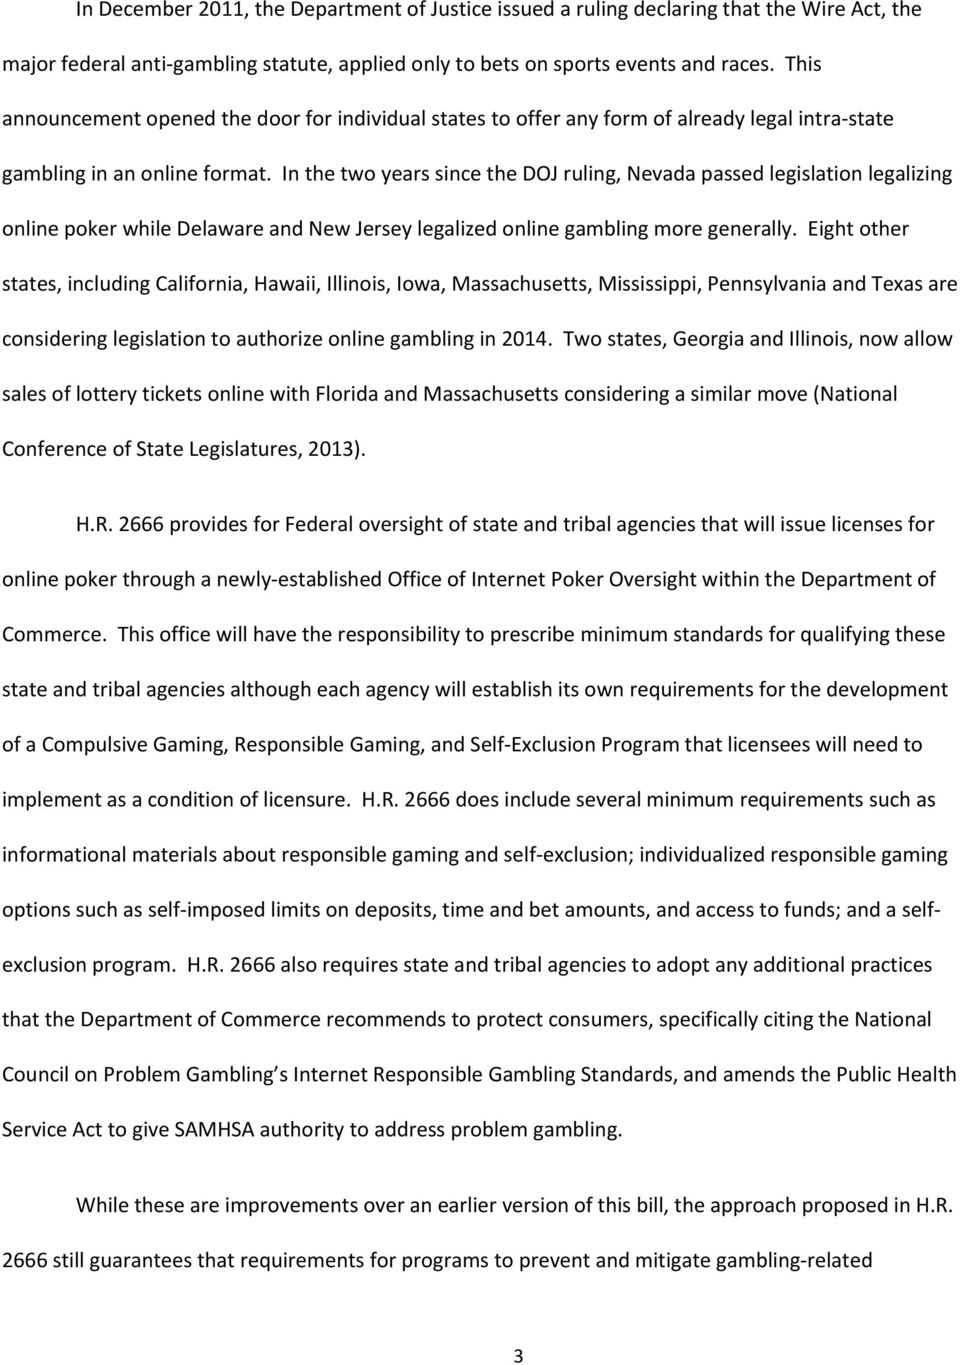 In the two years since the DOJ ruling, Nevada passed legislation legalizing online poker while Delaware and New Jersey legalized online gambling more generally.